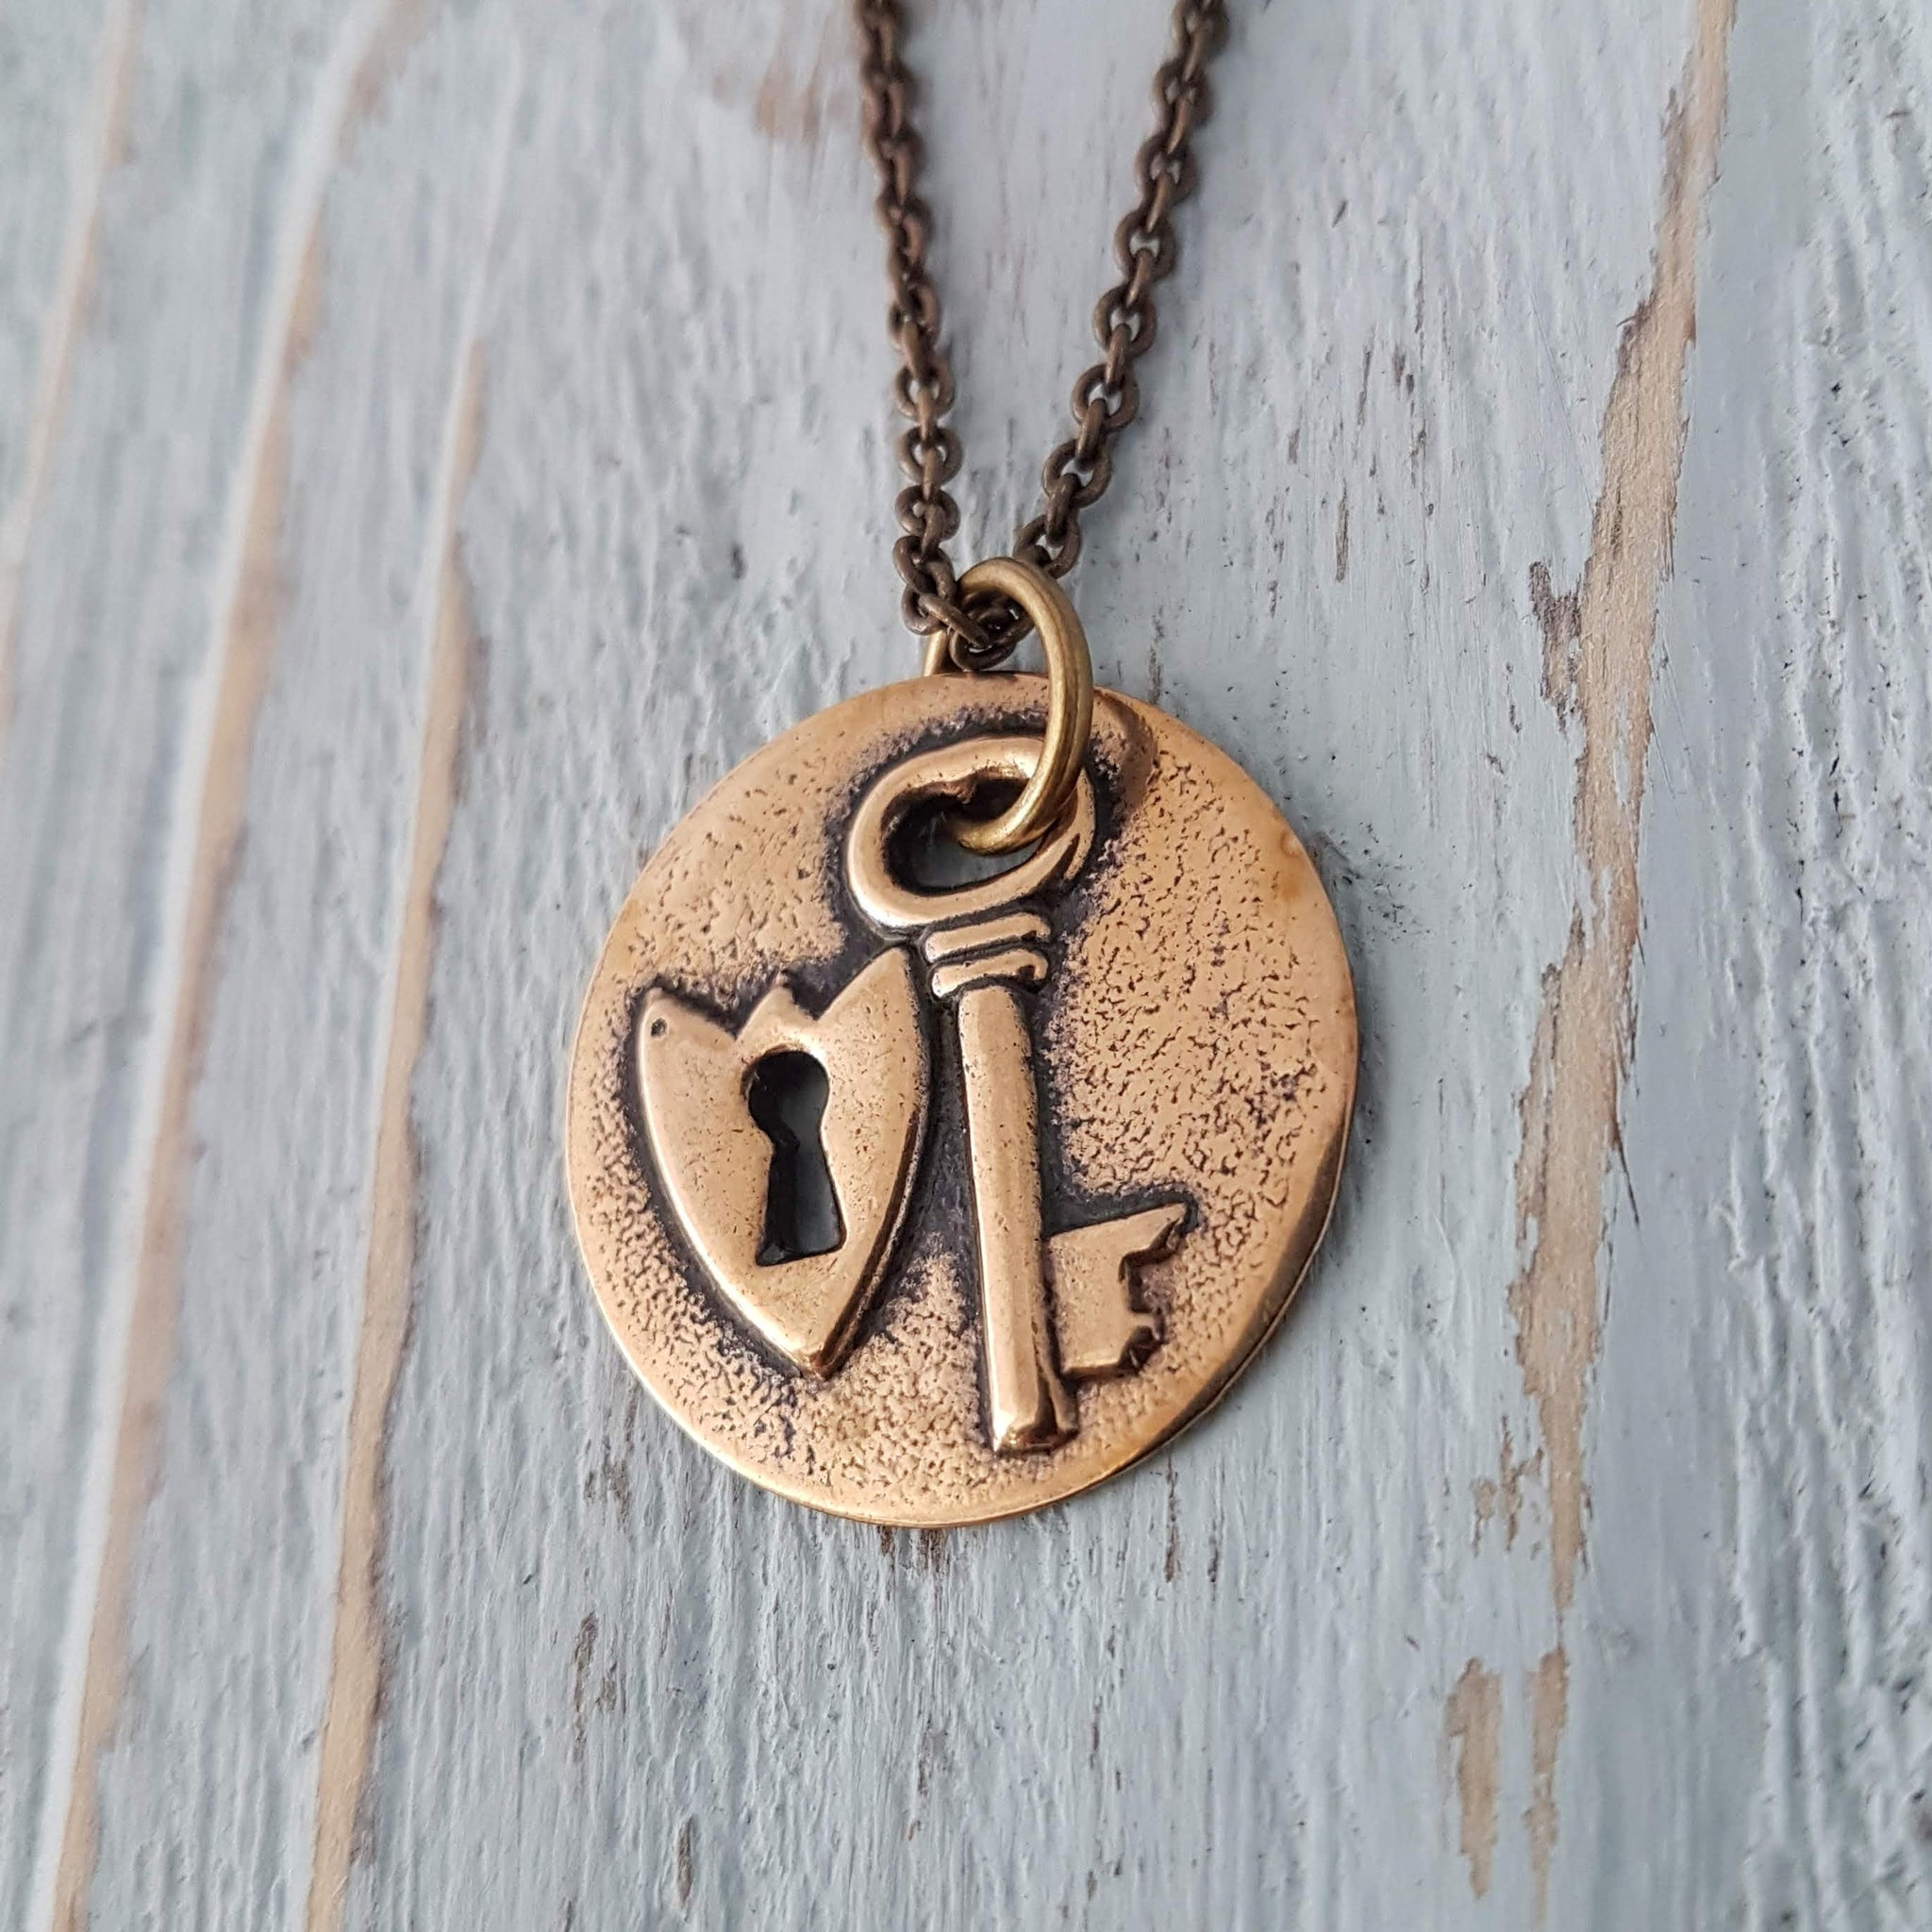 Lock and Key Necklace - Gwen Delicious Jewelry Designs